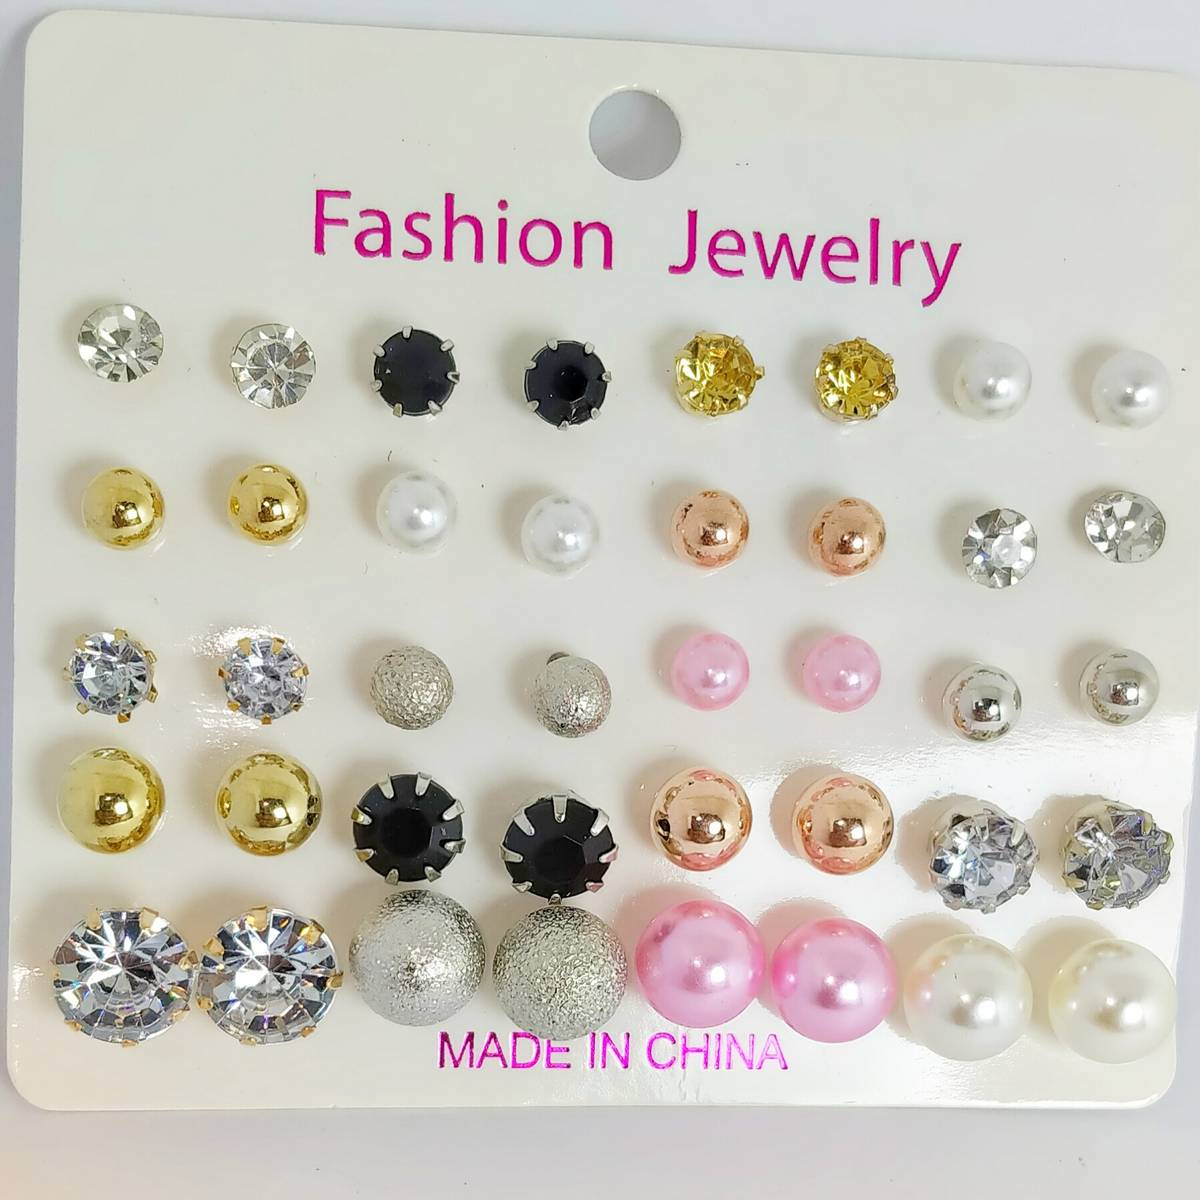 20 Pairs of New Eid High Quality Earrings Set In Different Colors For Girls Fashion Ear Rings Tops Studs